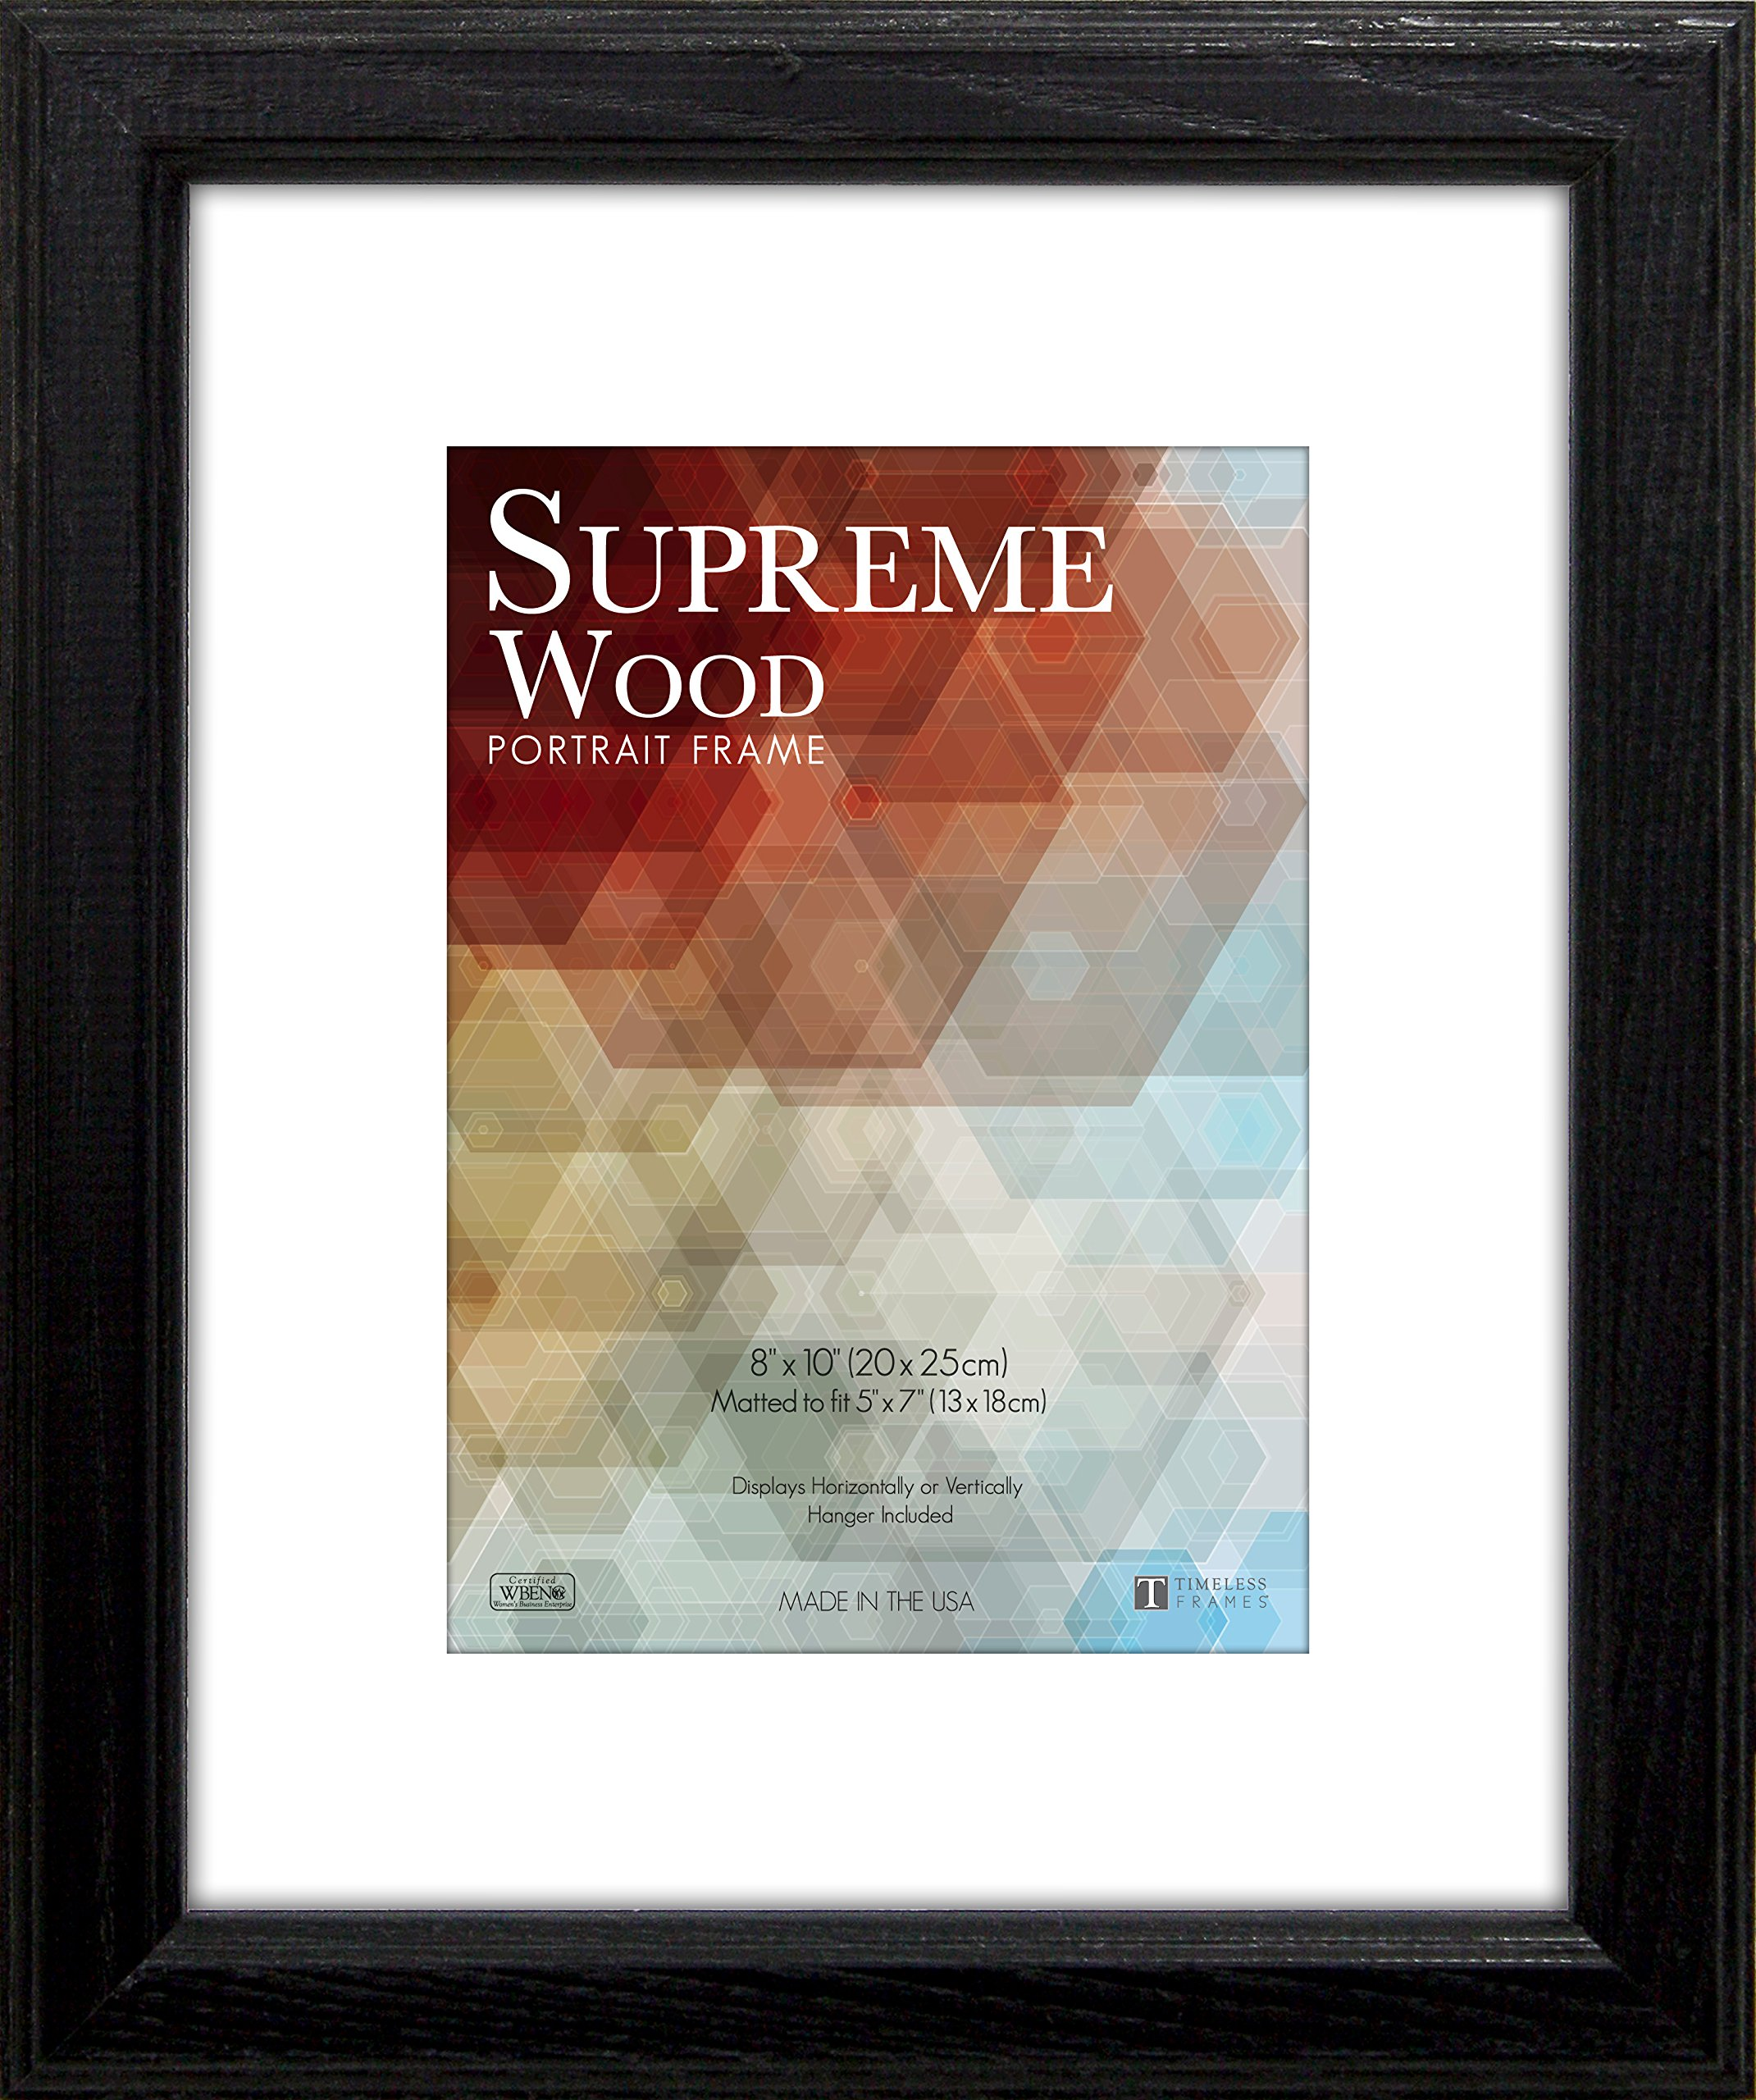 Timeless Frames 14x18 Inch Fits 11x14 Inch Photo Supreme Solid Wood Wall Frame, Black by Timeless Expressions